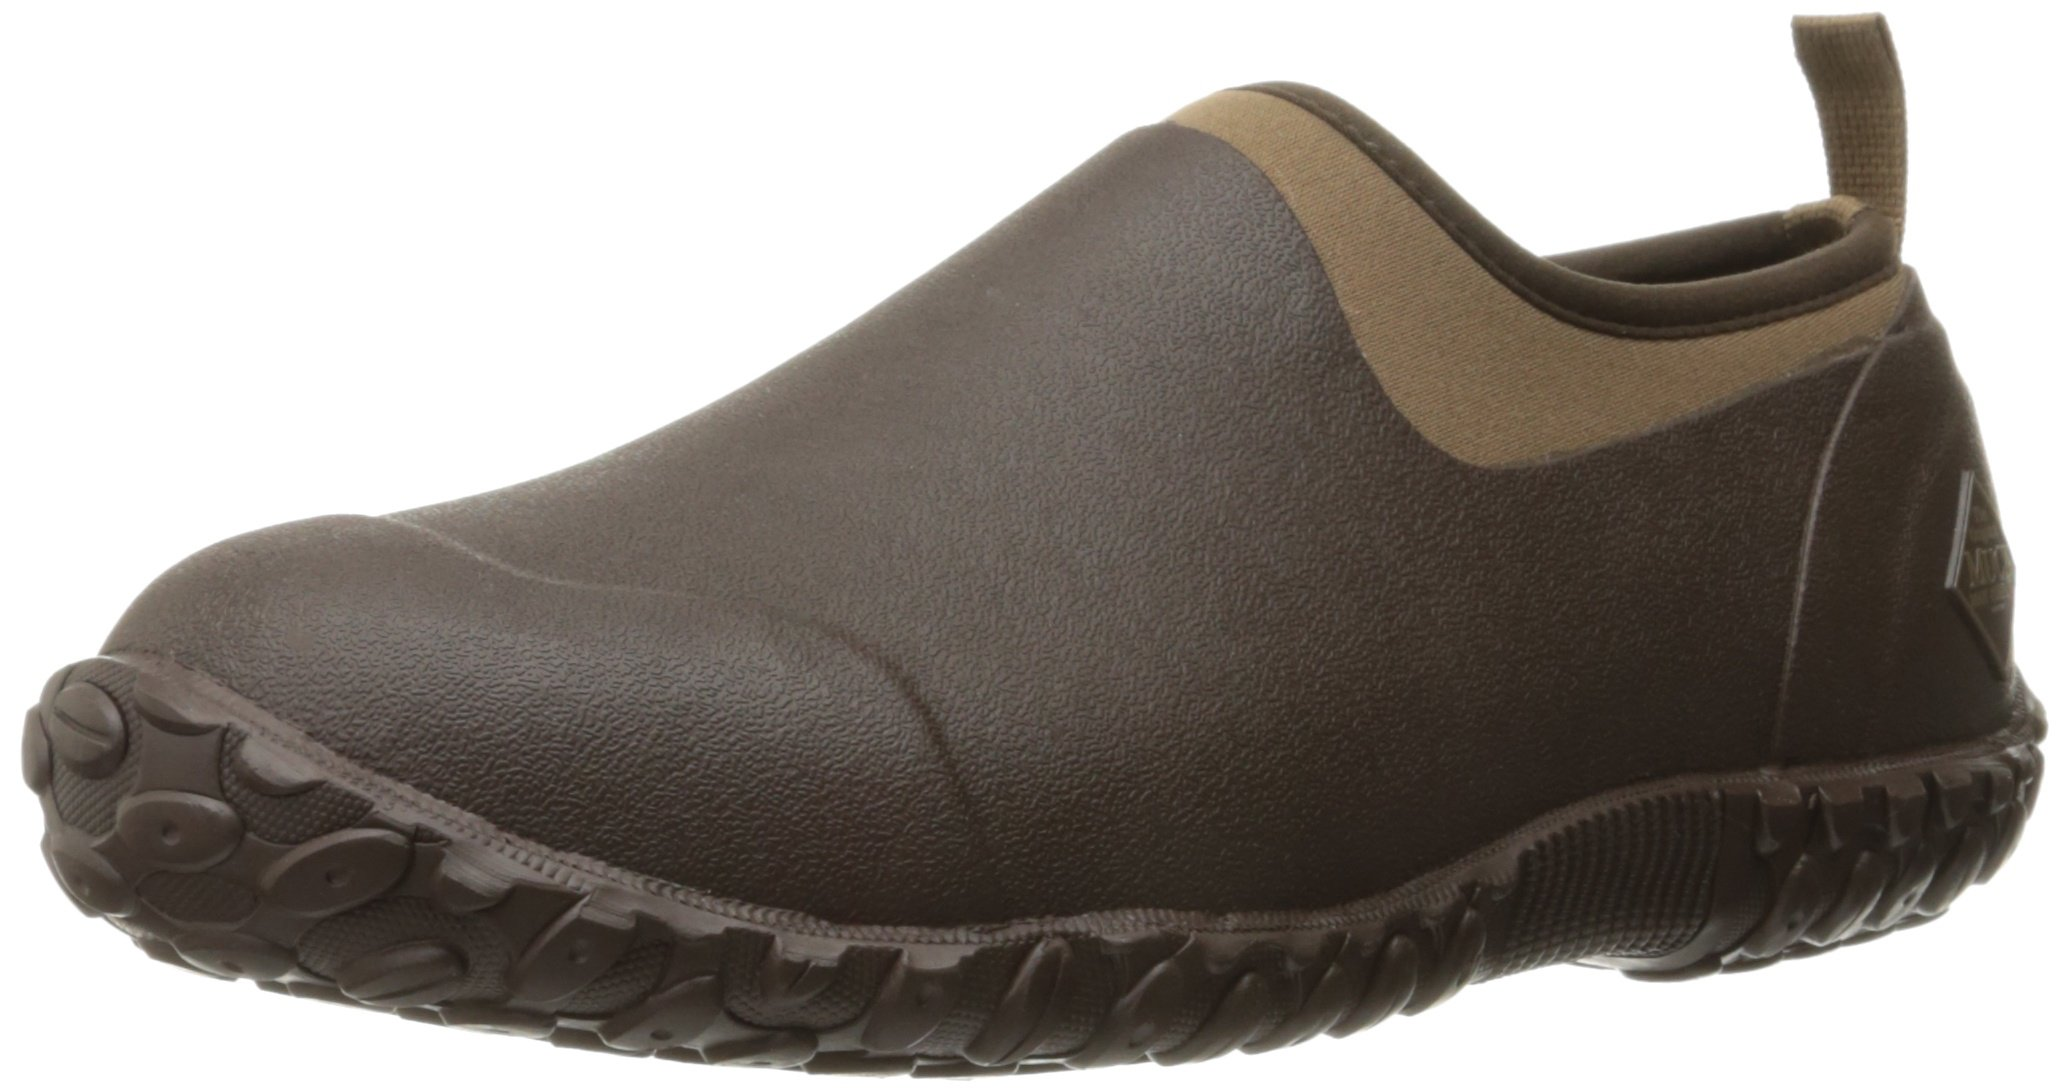 Muckster ll Men's Rubber Garden Shoes,Black/Otter,10 US/10-10.5 M US by Muck Boot